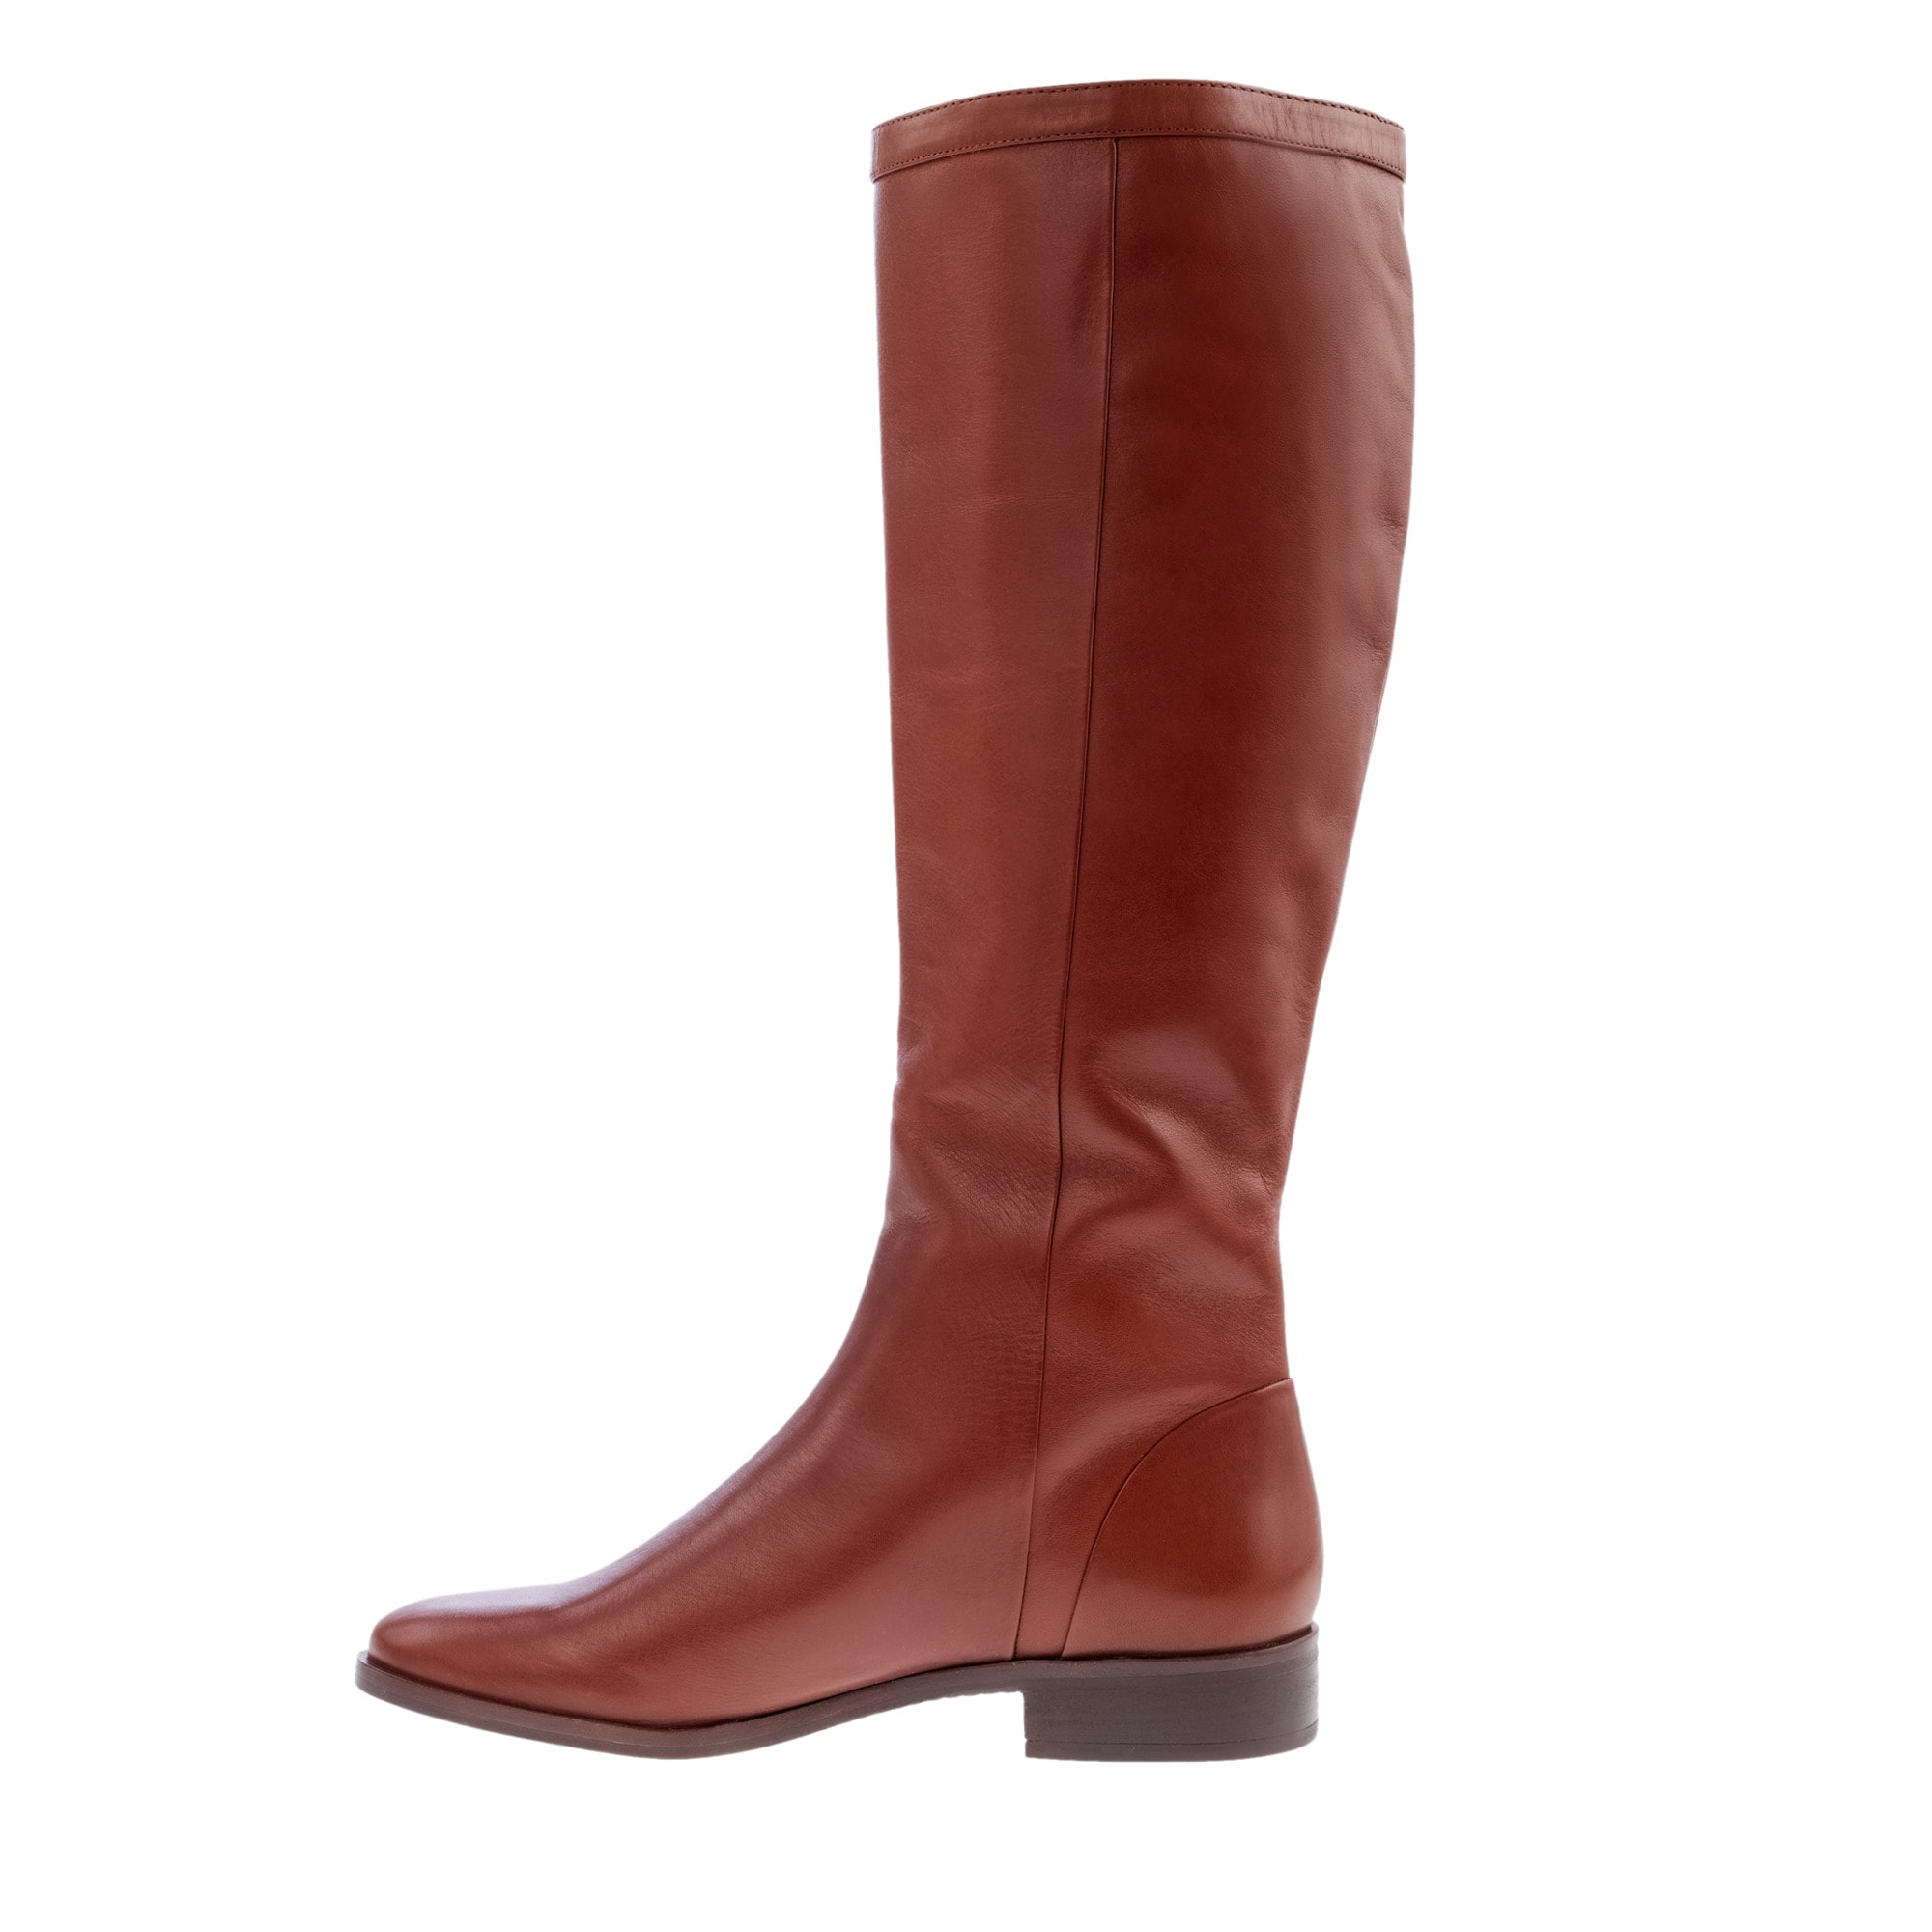 Harper leather boots